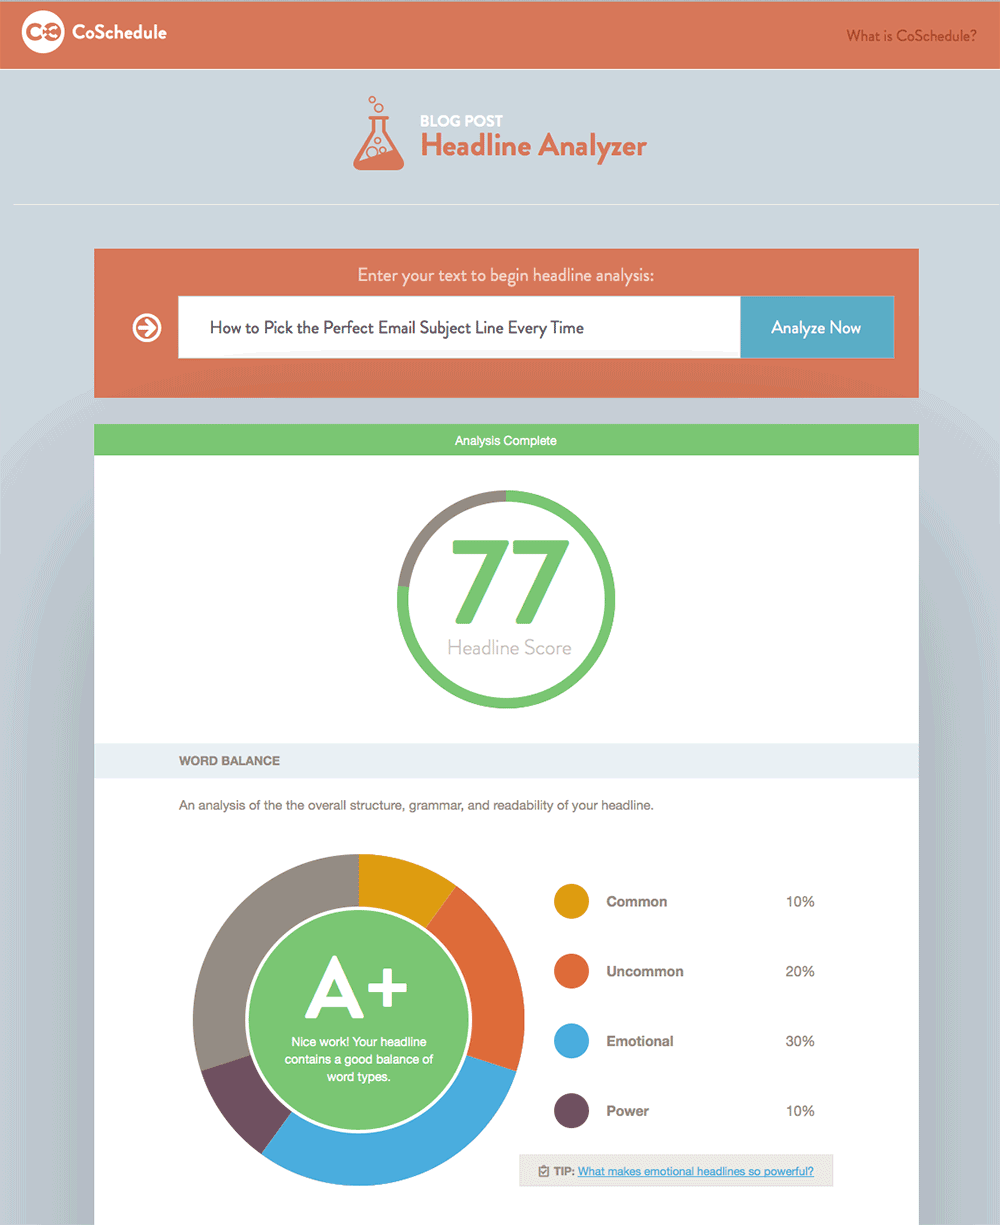 coschedule's headline analyzer could also do a great job with email subject lines